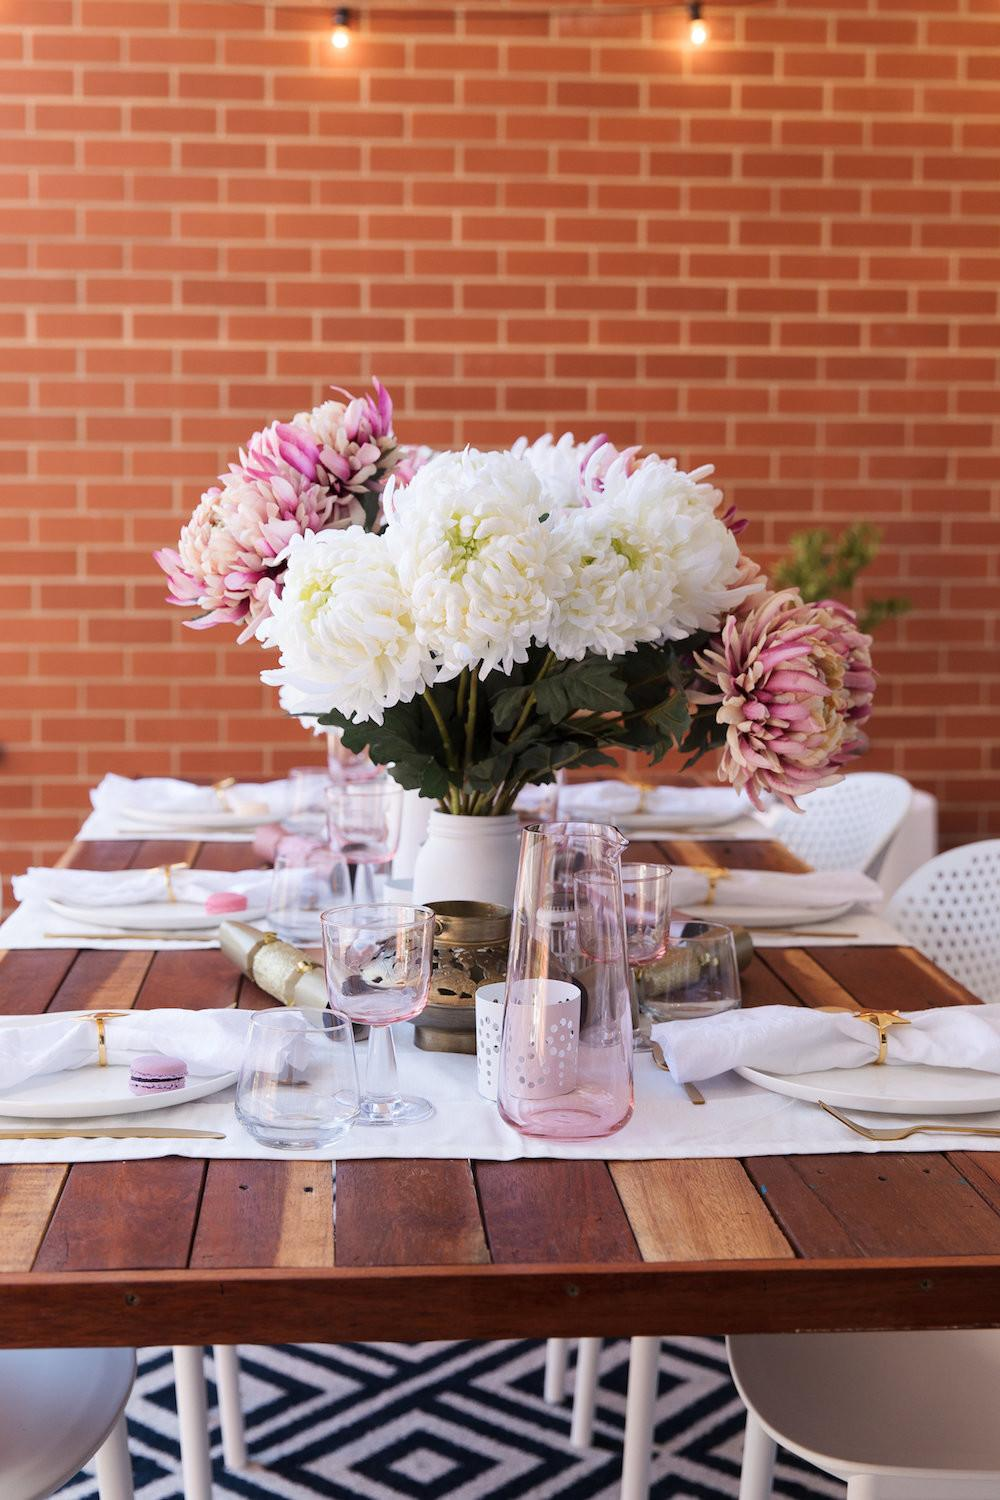 Create Floral Festive Outdoor Entertaining